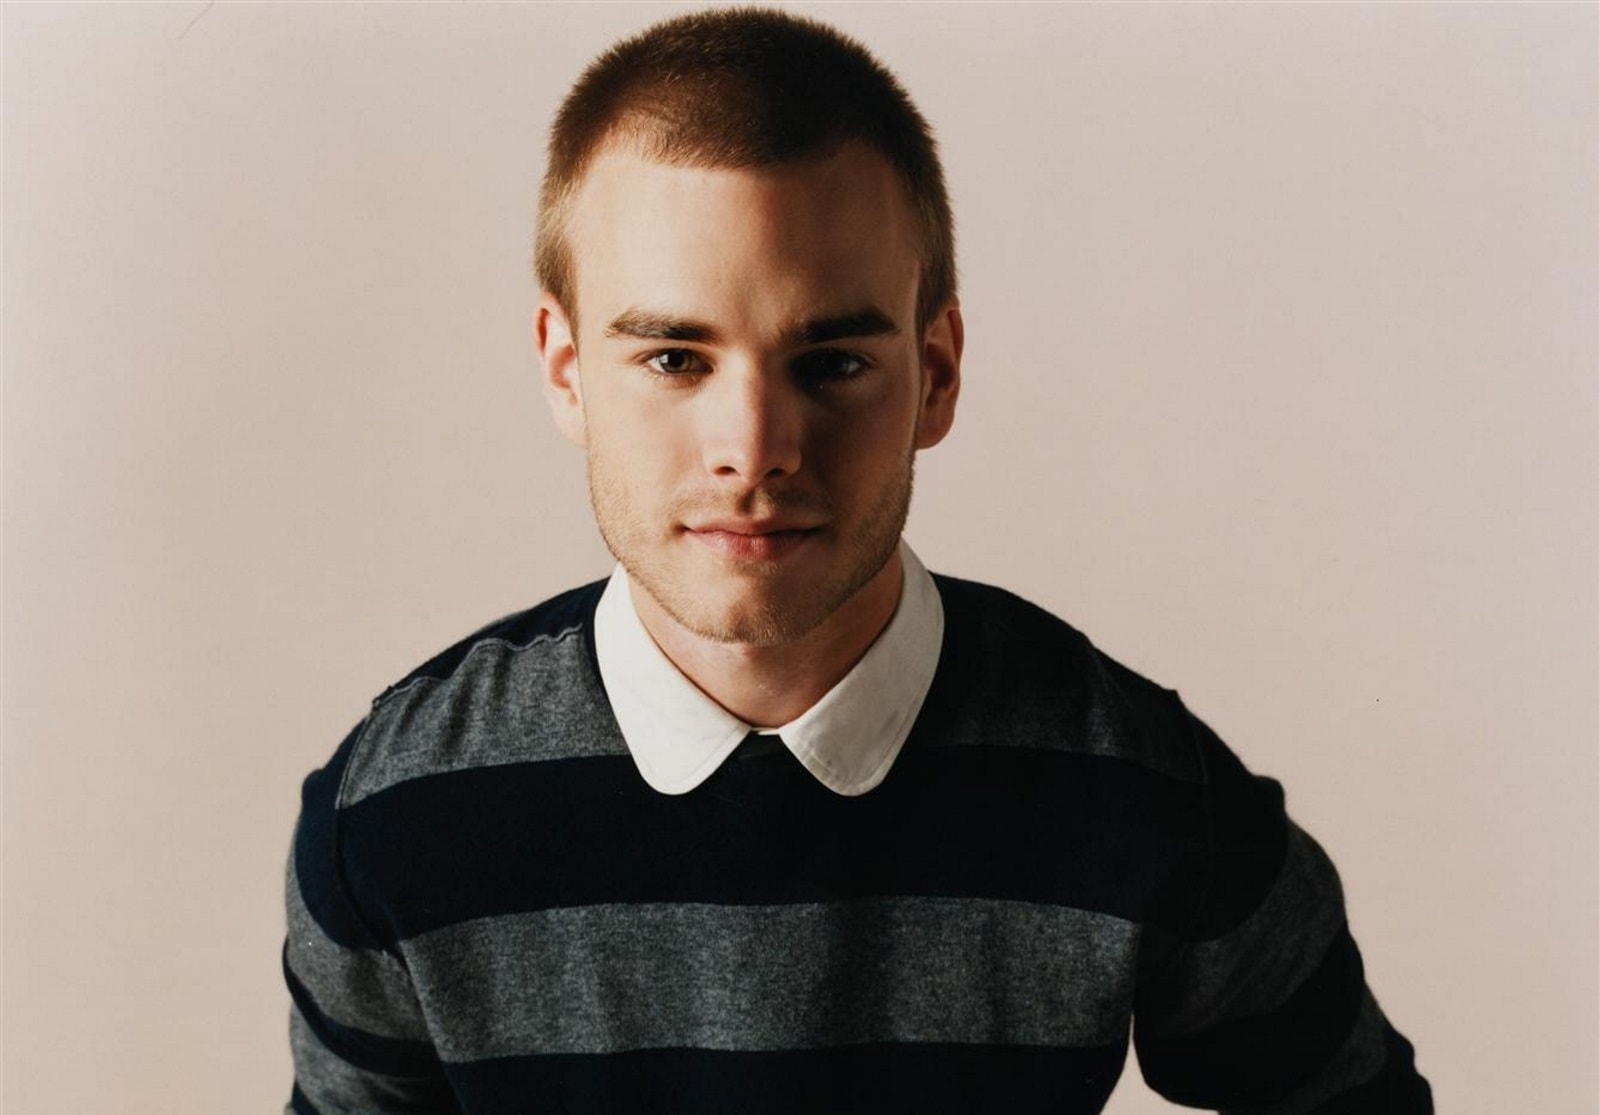 David Gallagher Wallpapers hd